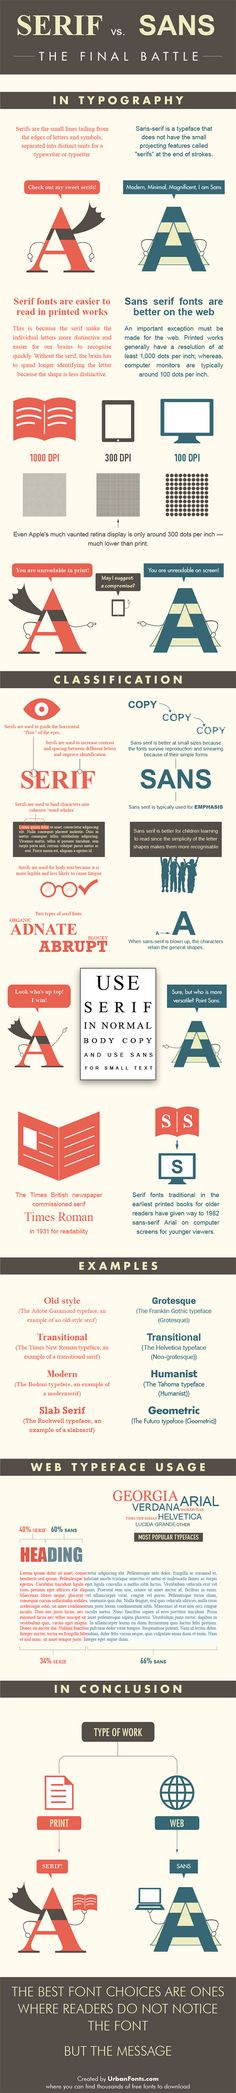 Serif vs. Sans #infographic - a quick primer on font choices